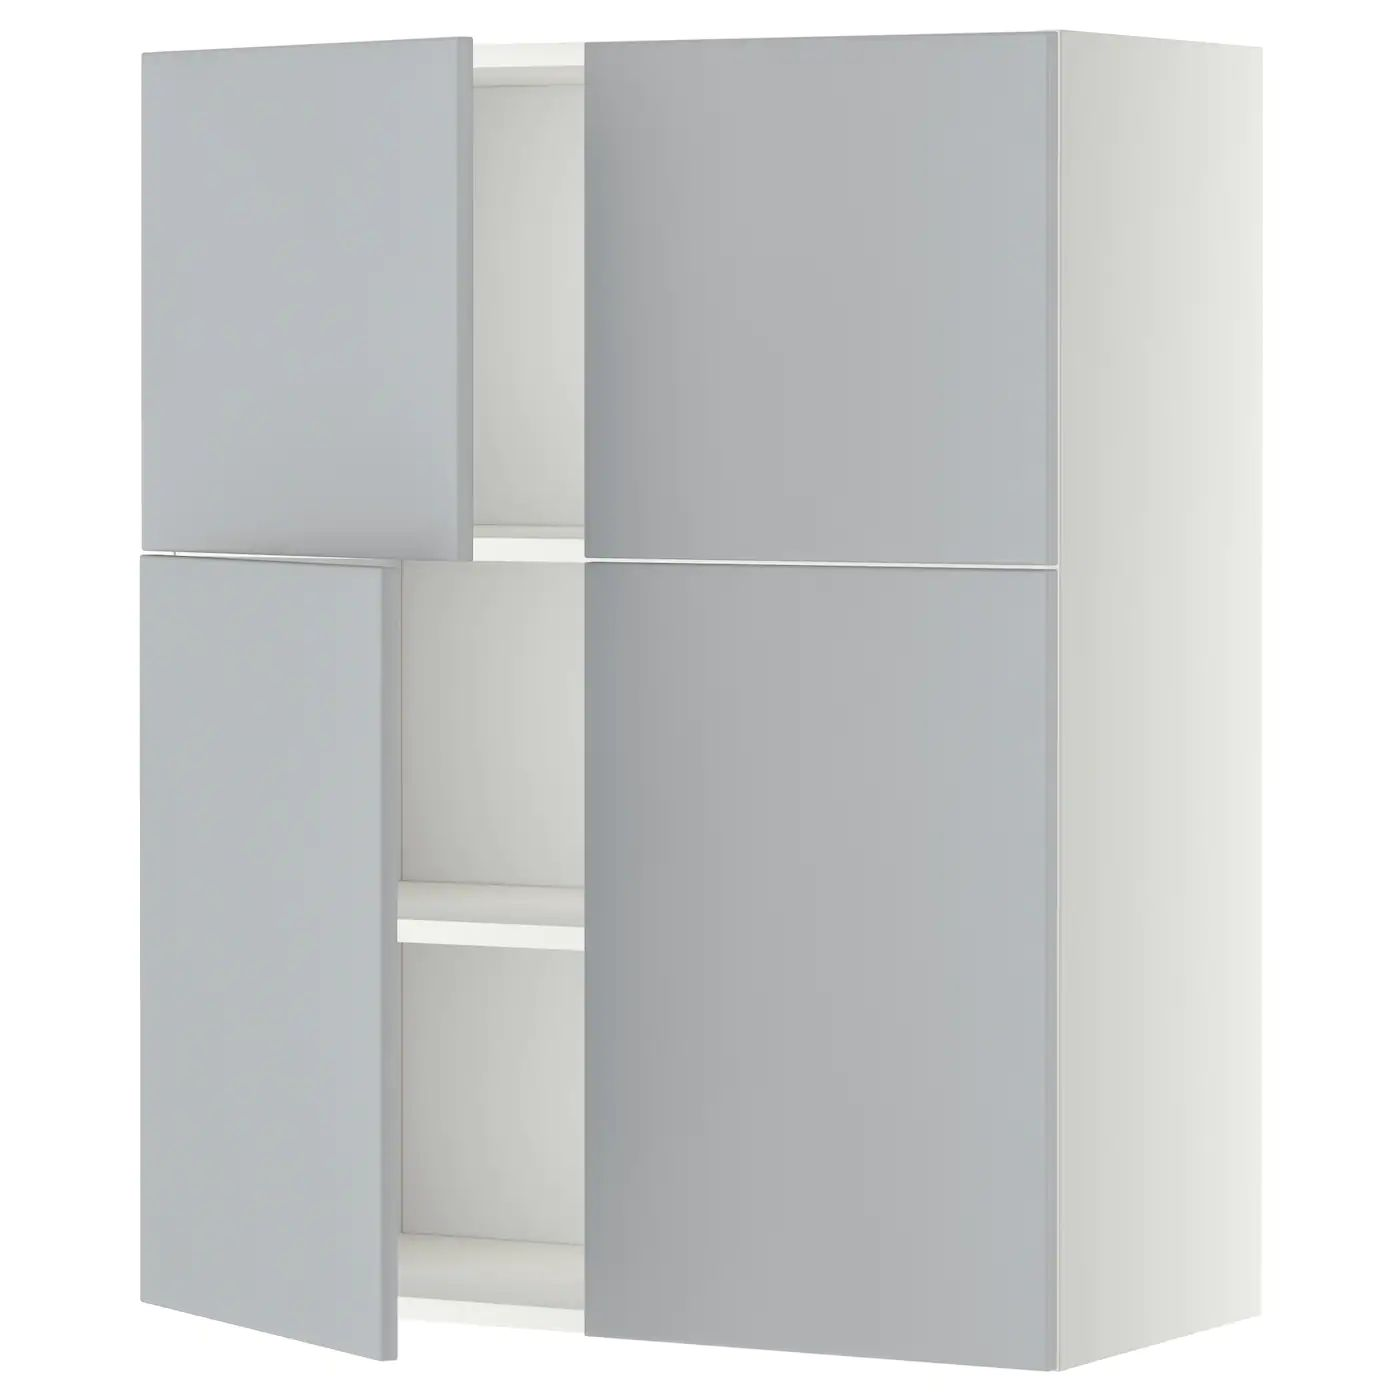 Kitchen cabinet doors northern ireland - Kitchen Cabinet Doors Northern Ireland Ikea Metod Wall Cabinet With Shelves 4 Doors Sturdy Frame Download